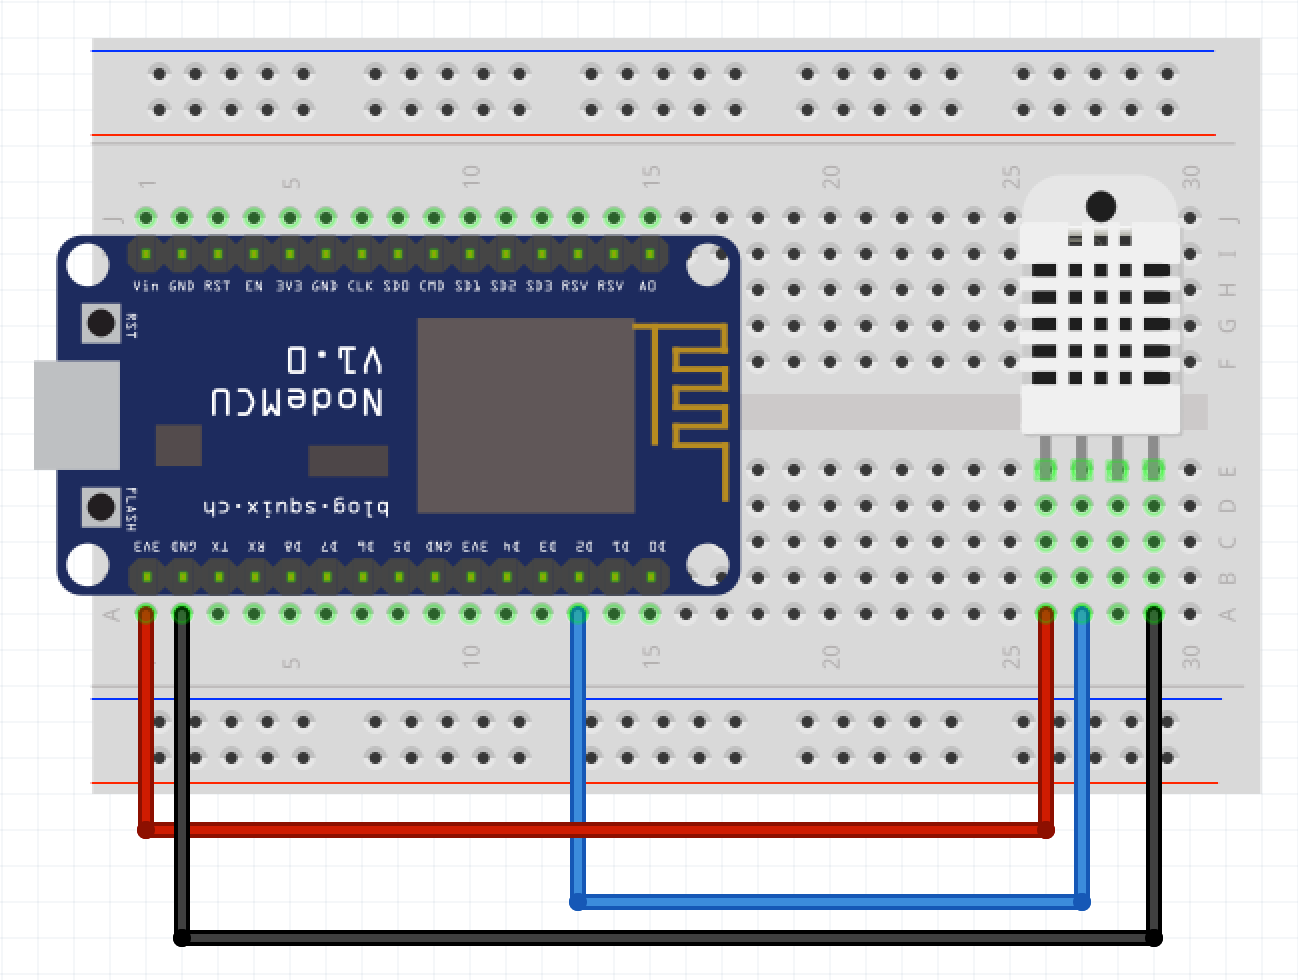 dht22_esp8266_wiring.png